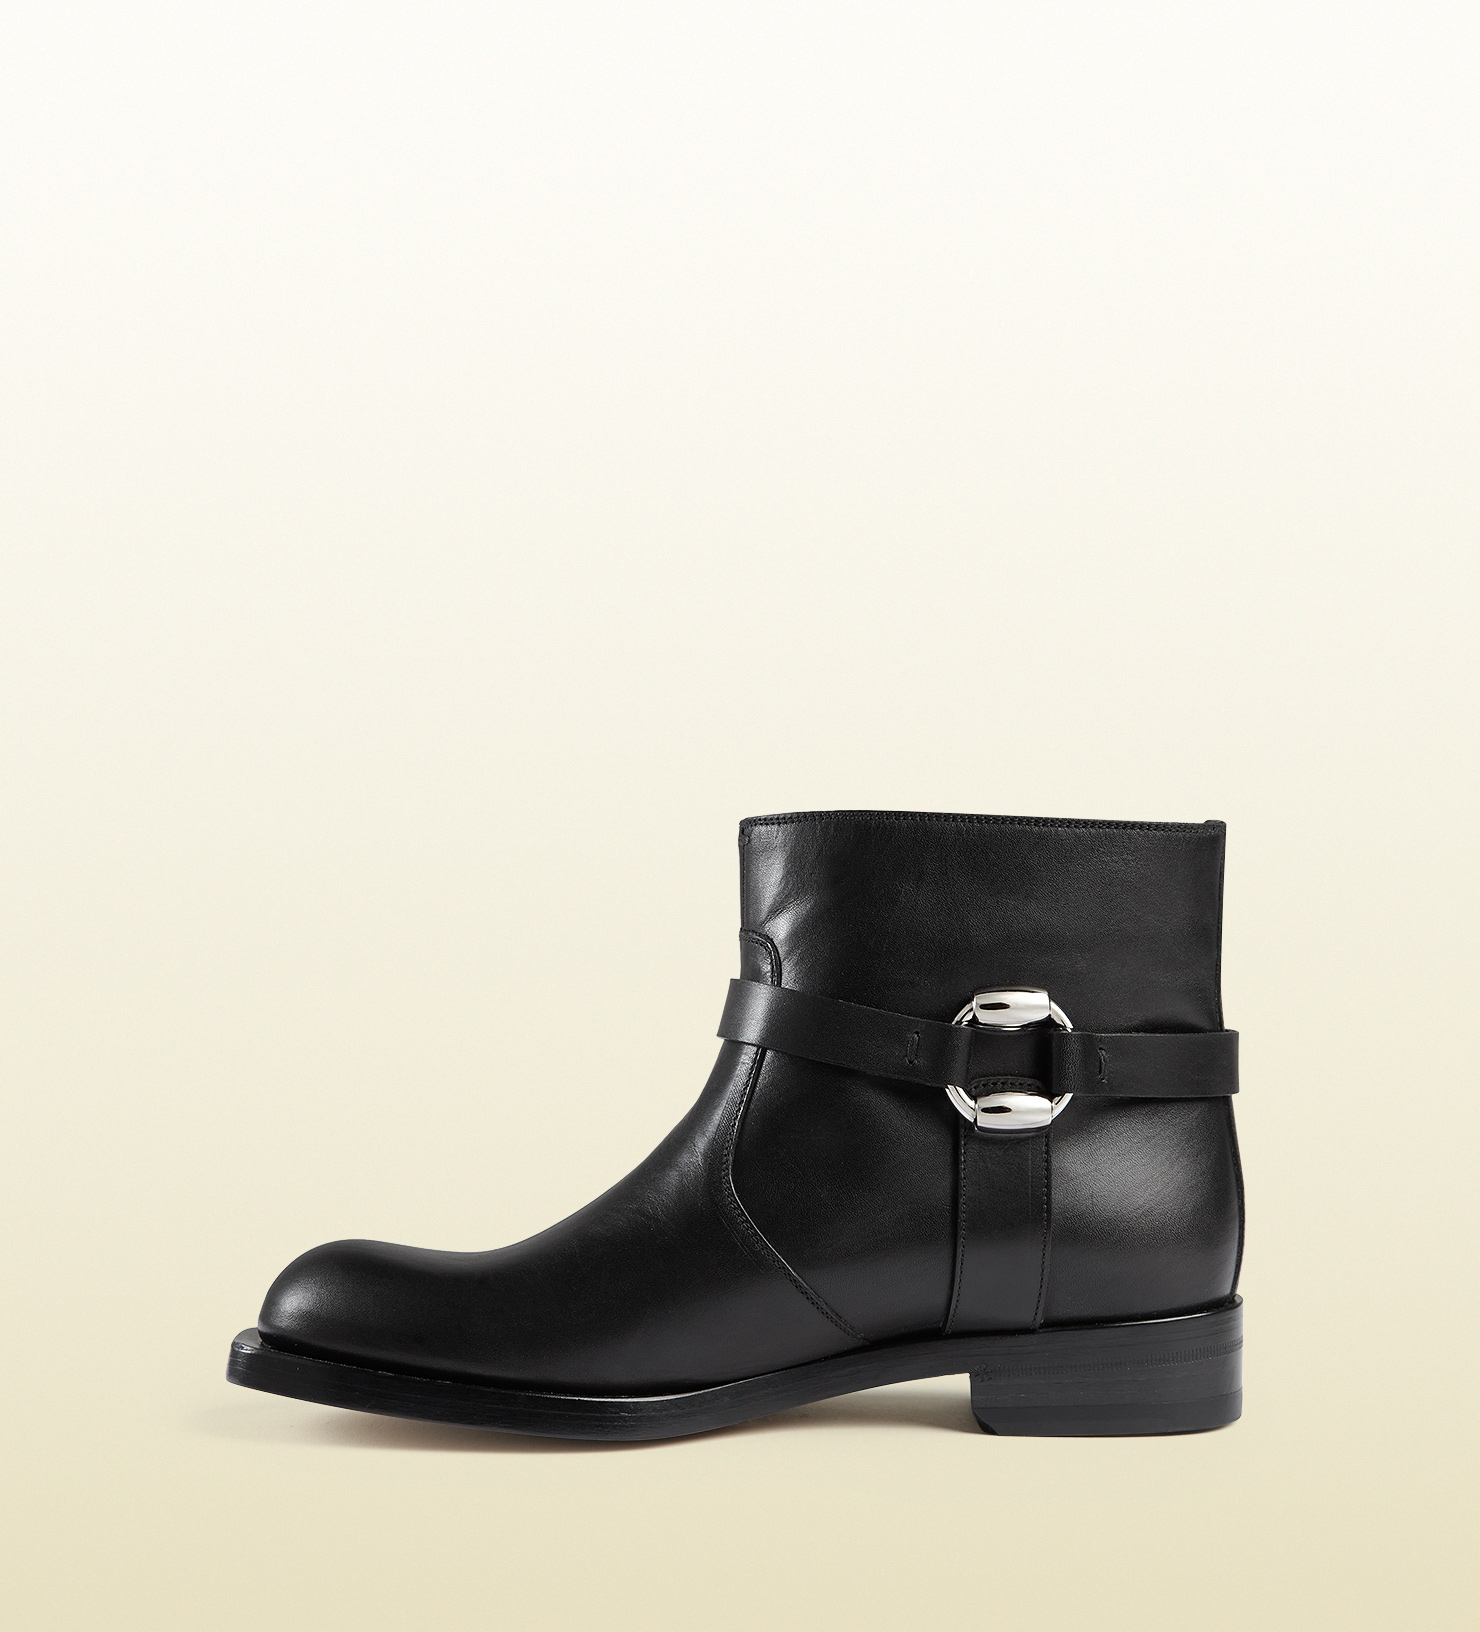 lyst gucci leather biker boot in black for men